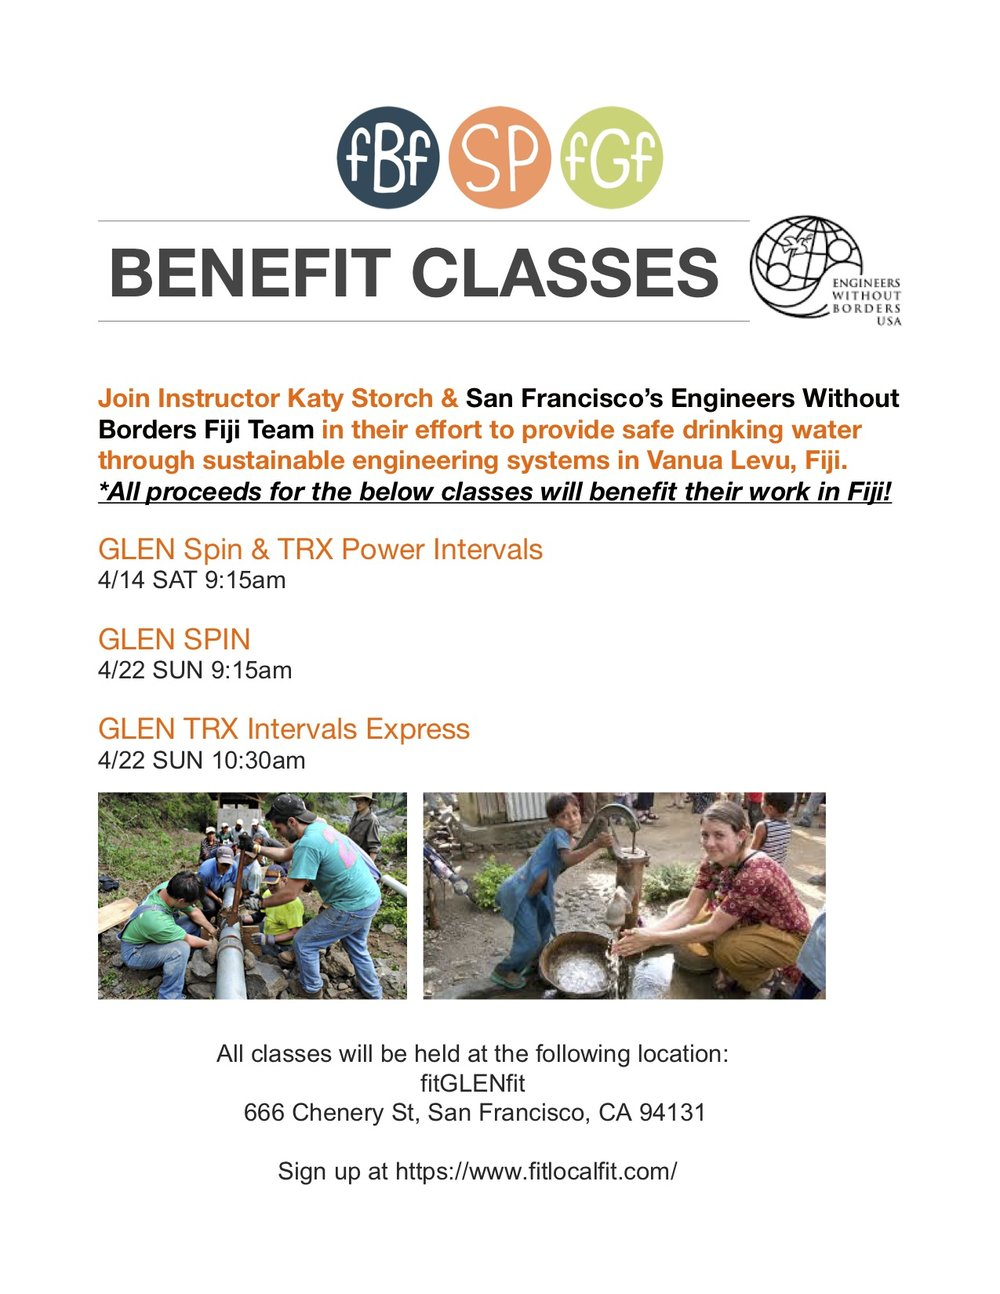 benefit_classes_4.6.18.jpg